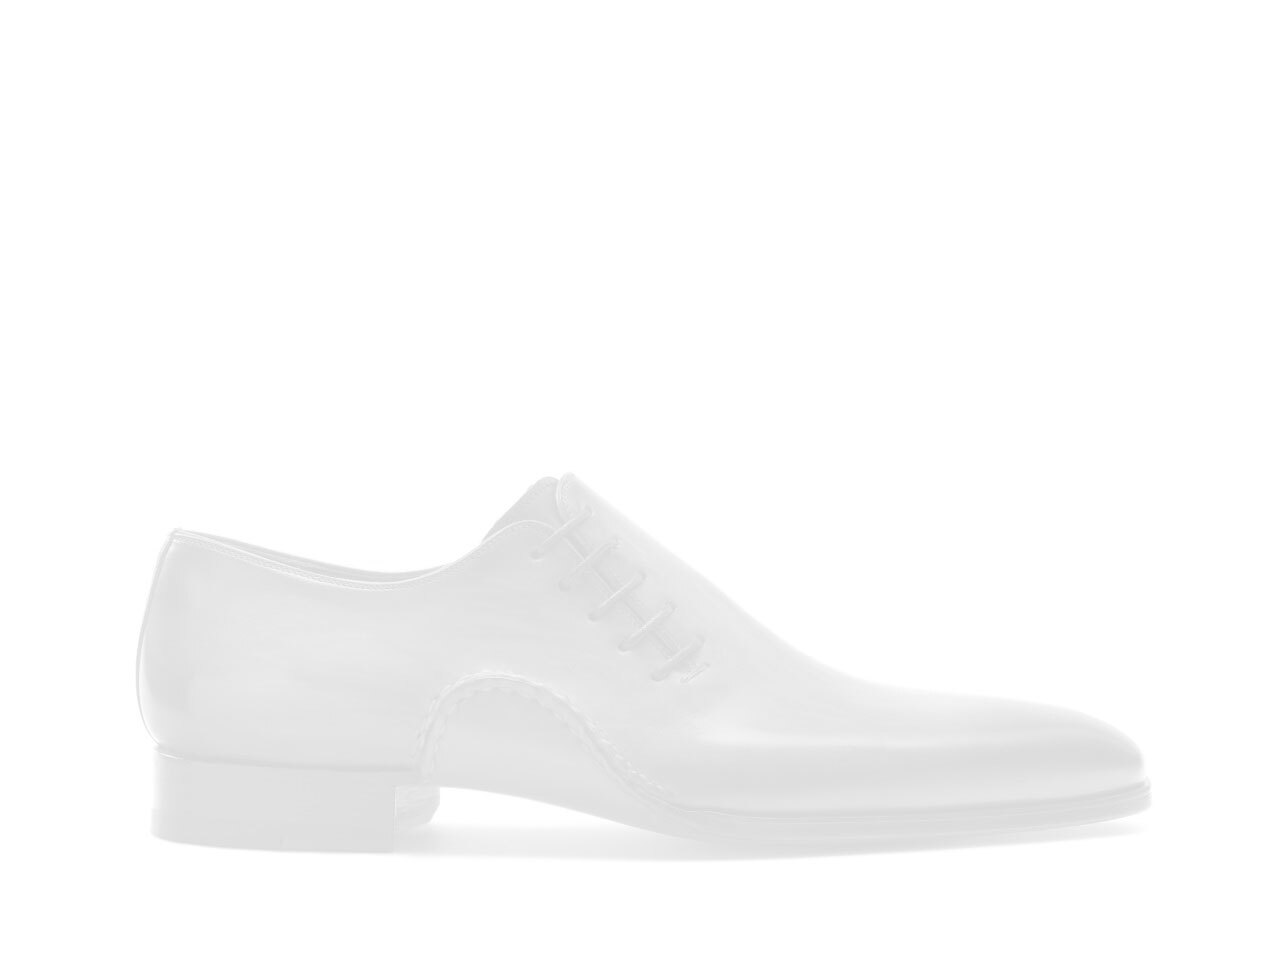 Side view of the Magnanni Varenna II Grey Men's Sneakers